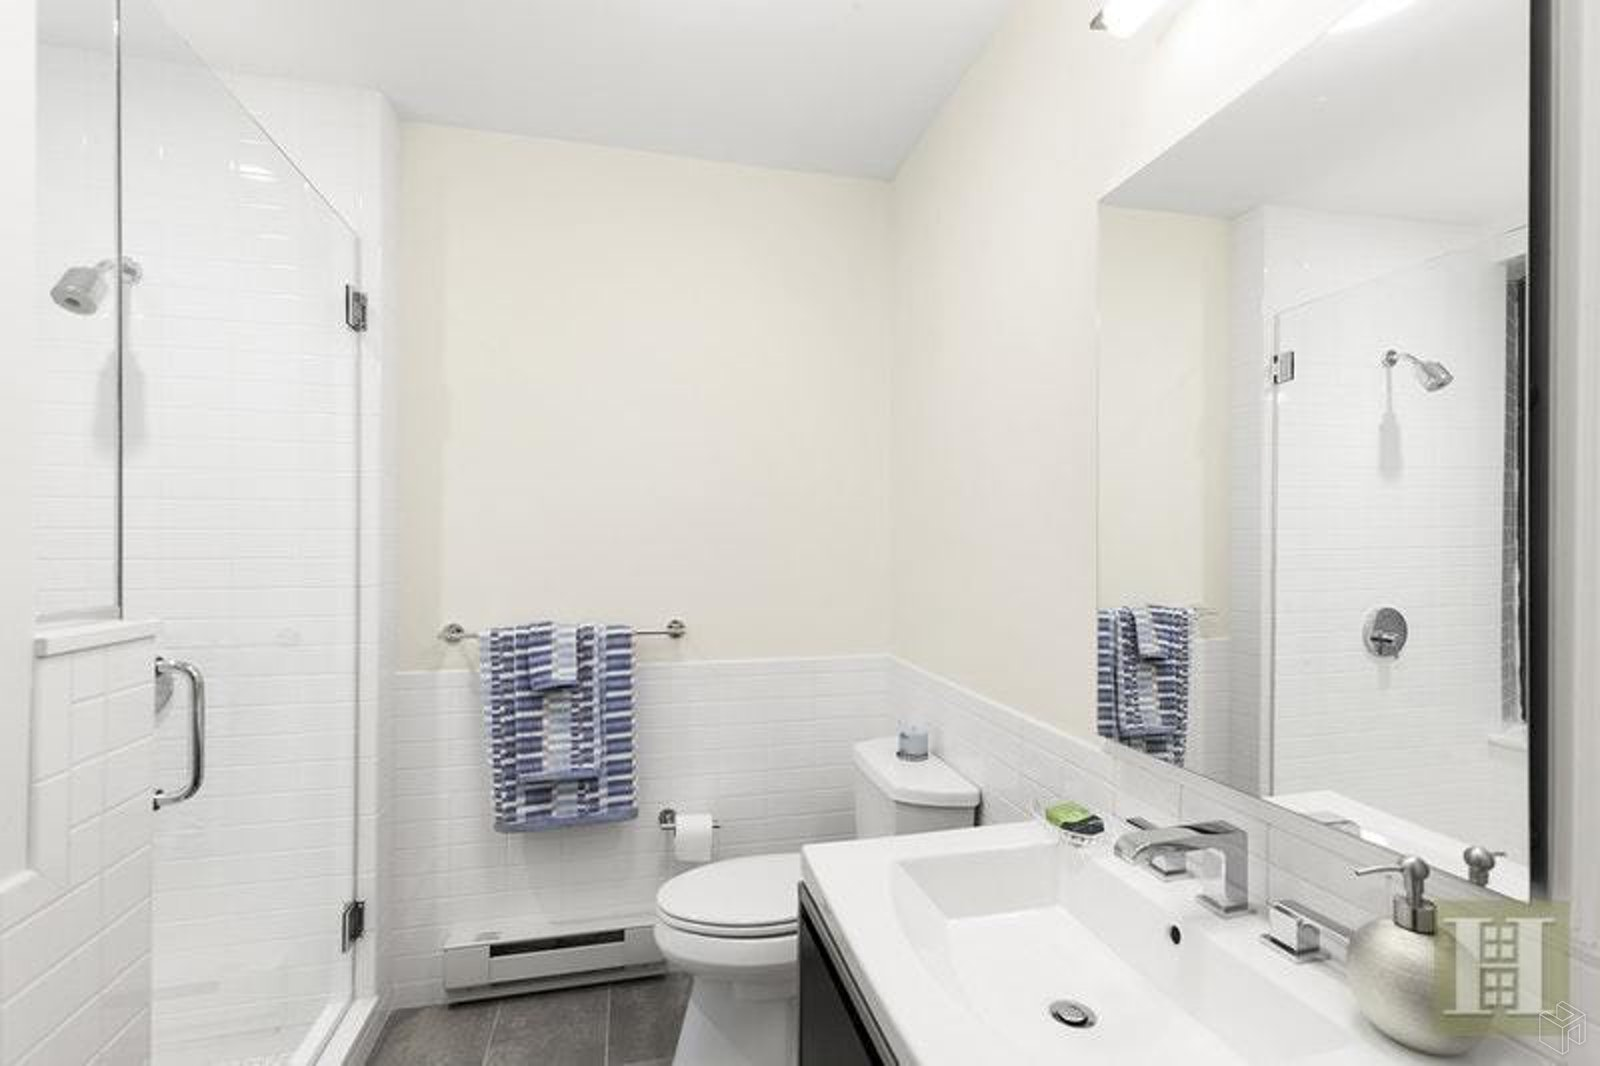 98 Morningside Avenue 26, Upper Manhattan, NYC, 10027, Price Not Disclosed, Rented Property, Halstead Real Estate, Photo 5